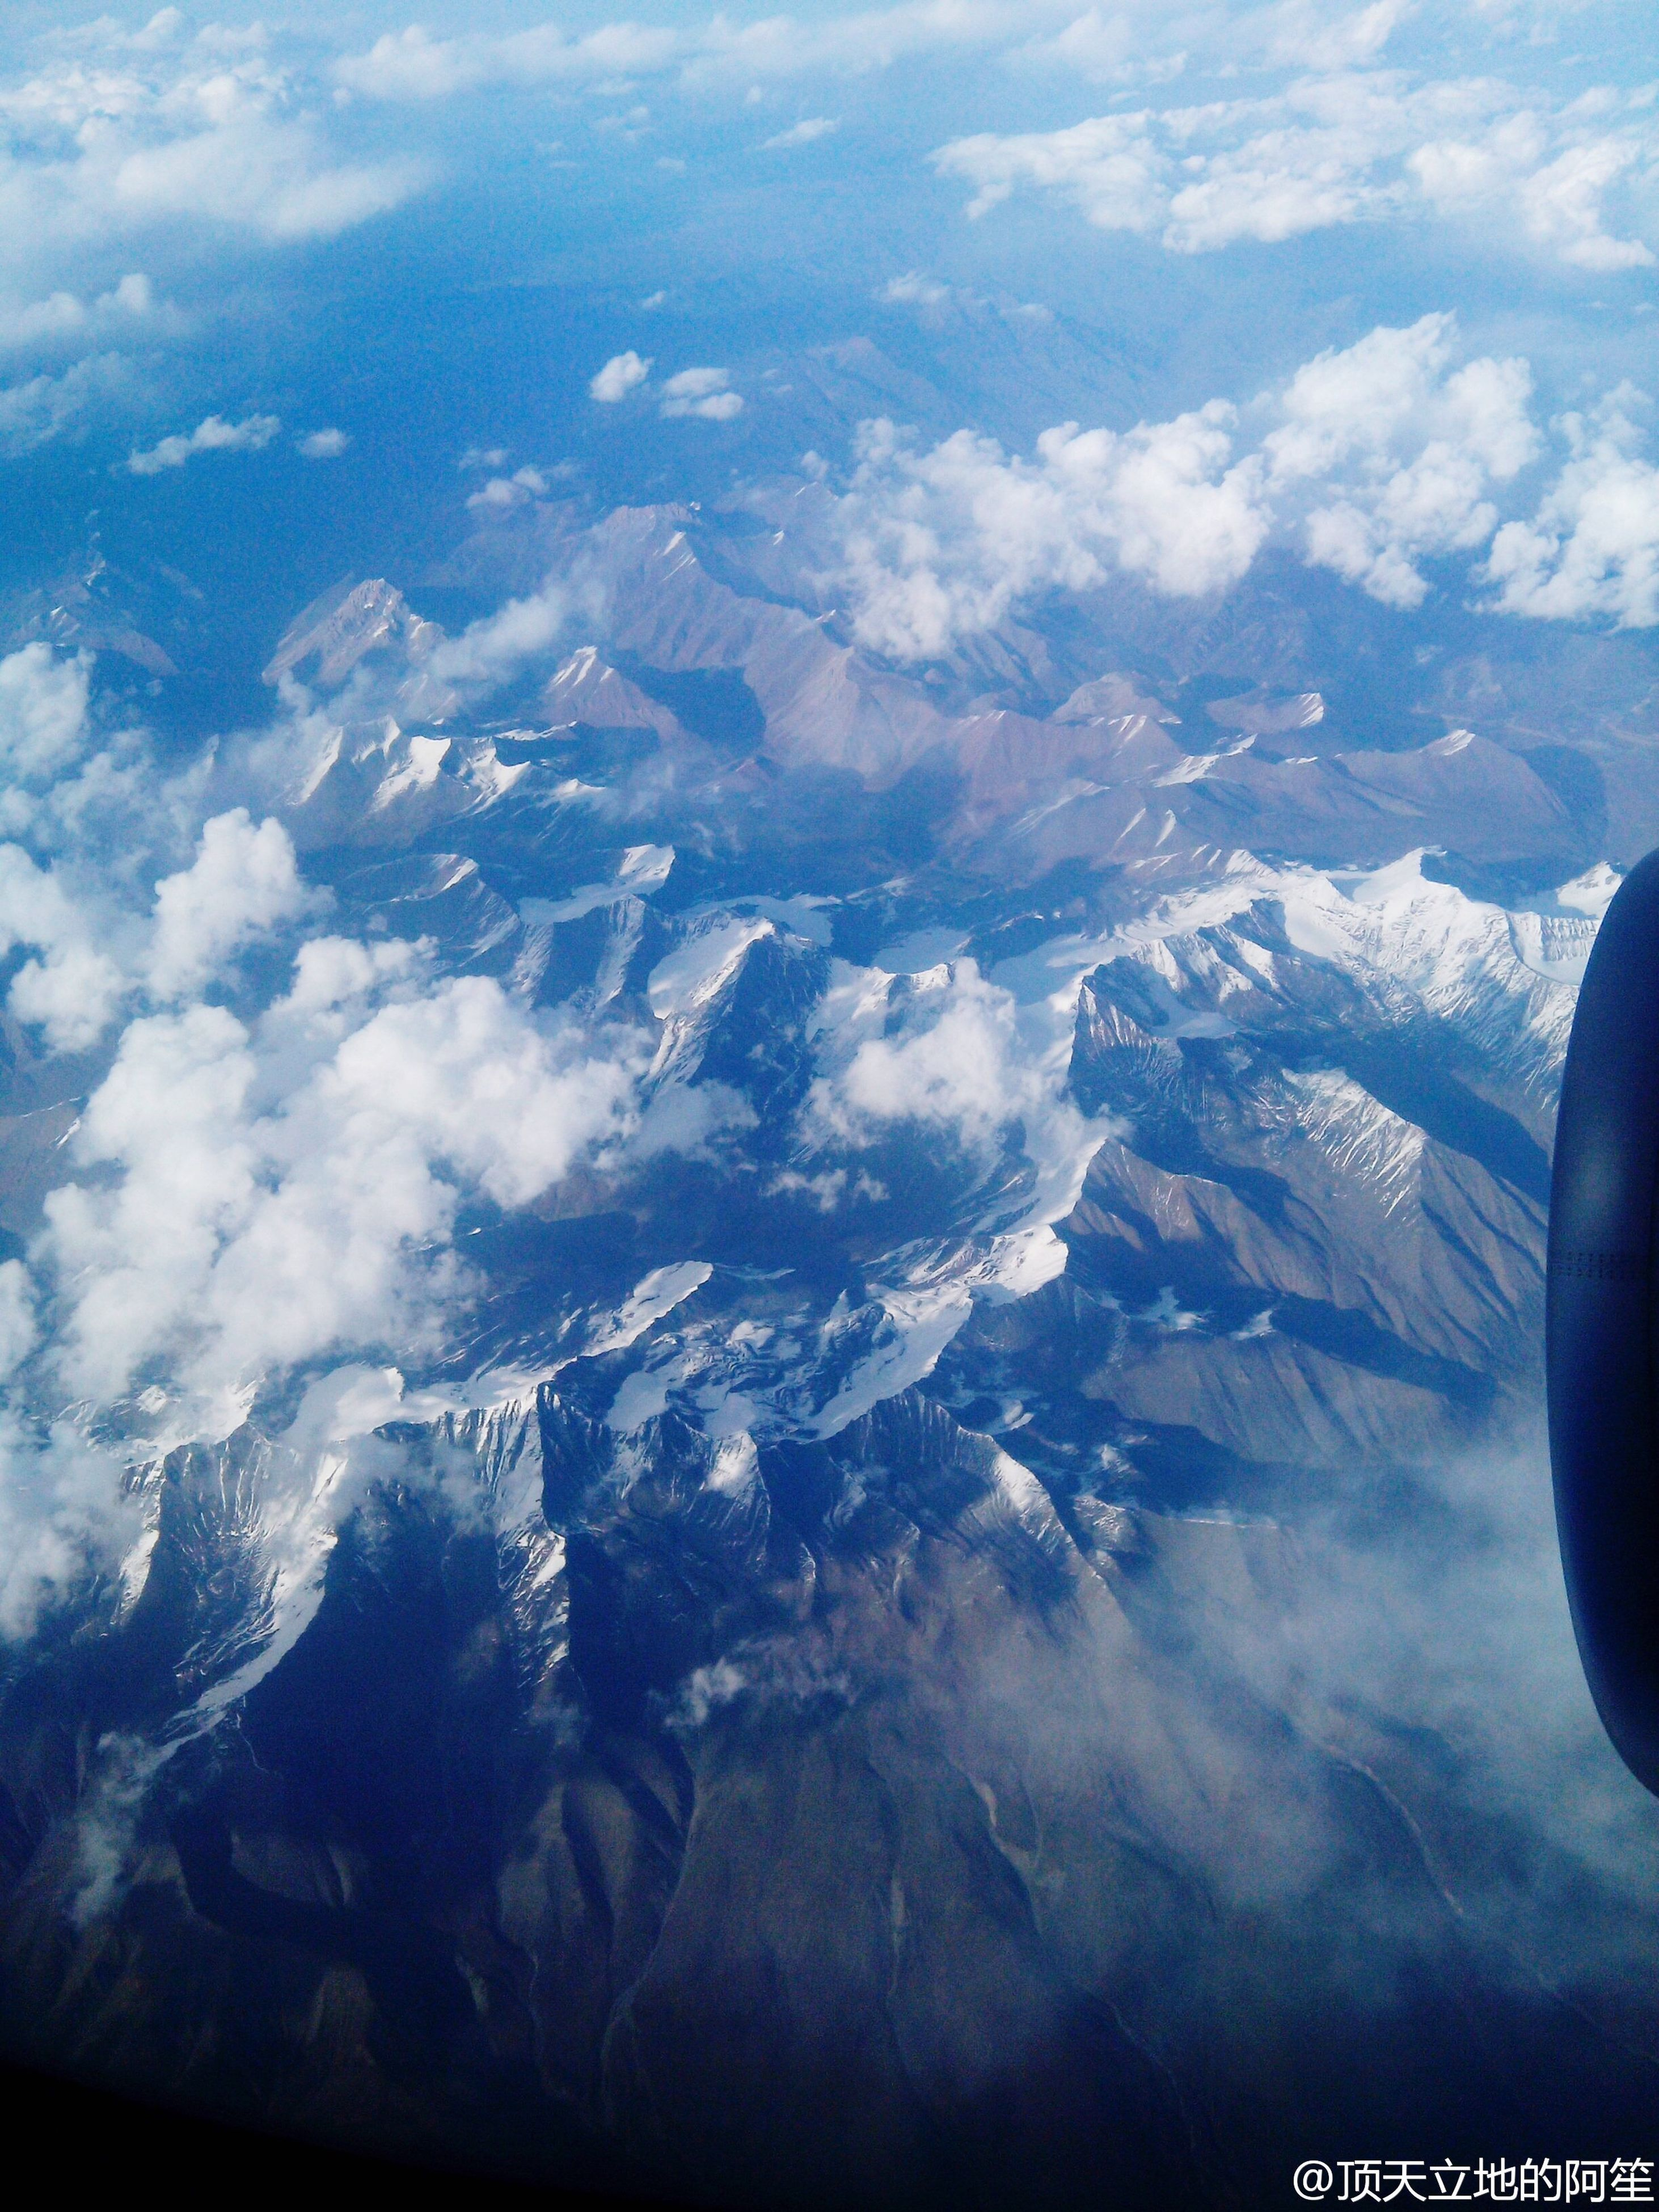 aerial view, scenics, landscape, beauty in nature, tranquil scene, mountain, tranquility, nature, airplane, mountain range, sky, air vehicle, cloud - sky, snow, idyllic, winter, blue, majestic, travel, snowcapped mountain